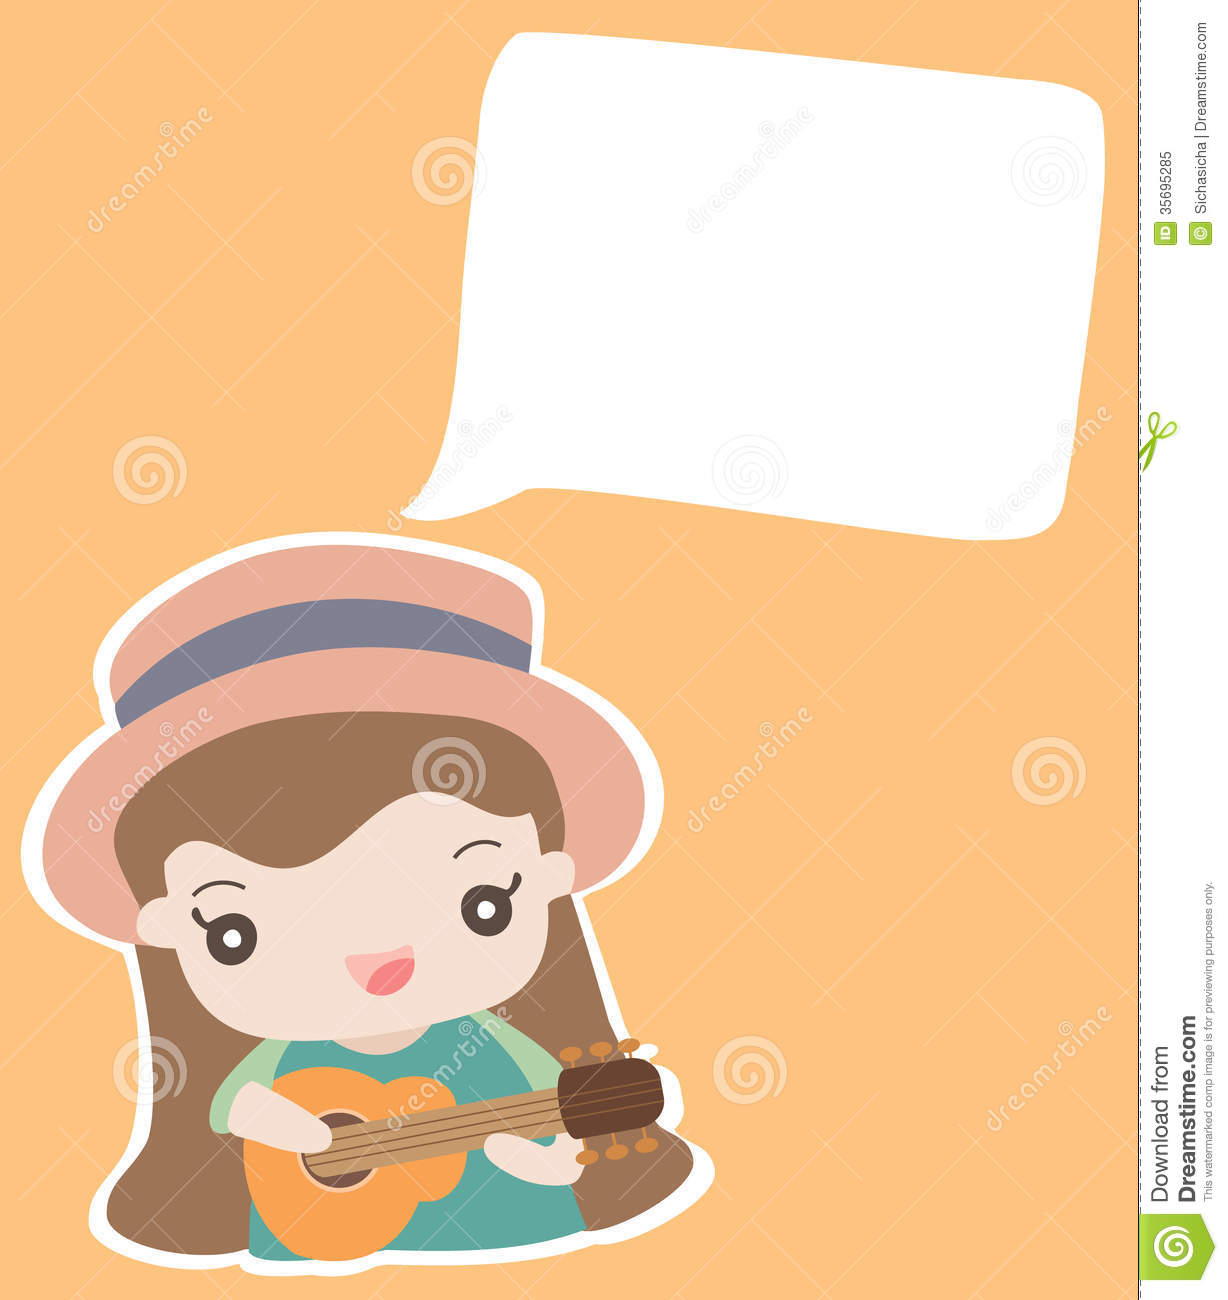 ukulele wallpaper layouts backgrounds